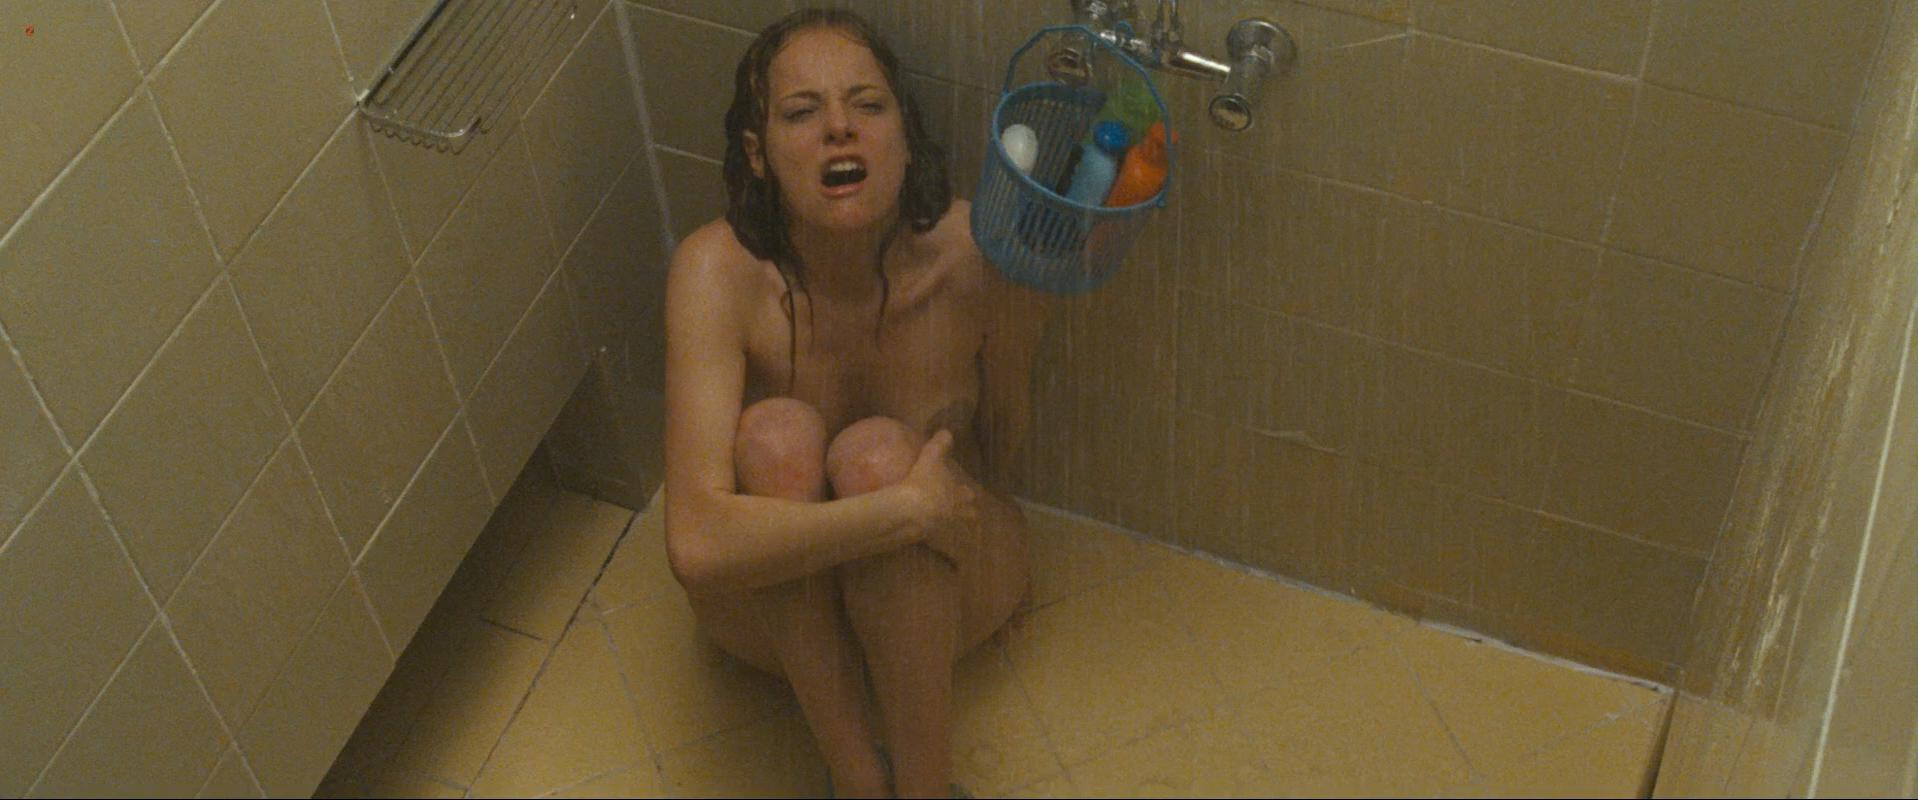 Bijou Phillips nude - It's Alive (2008)